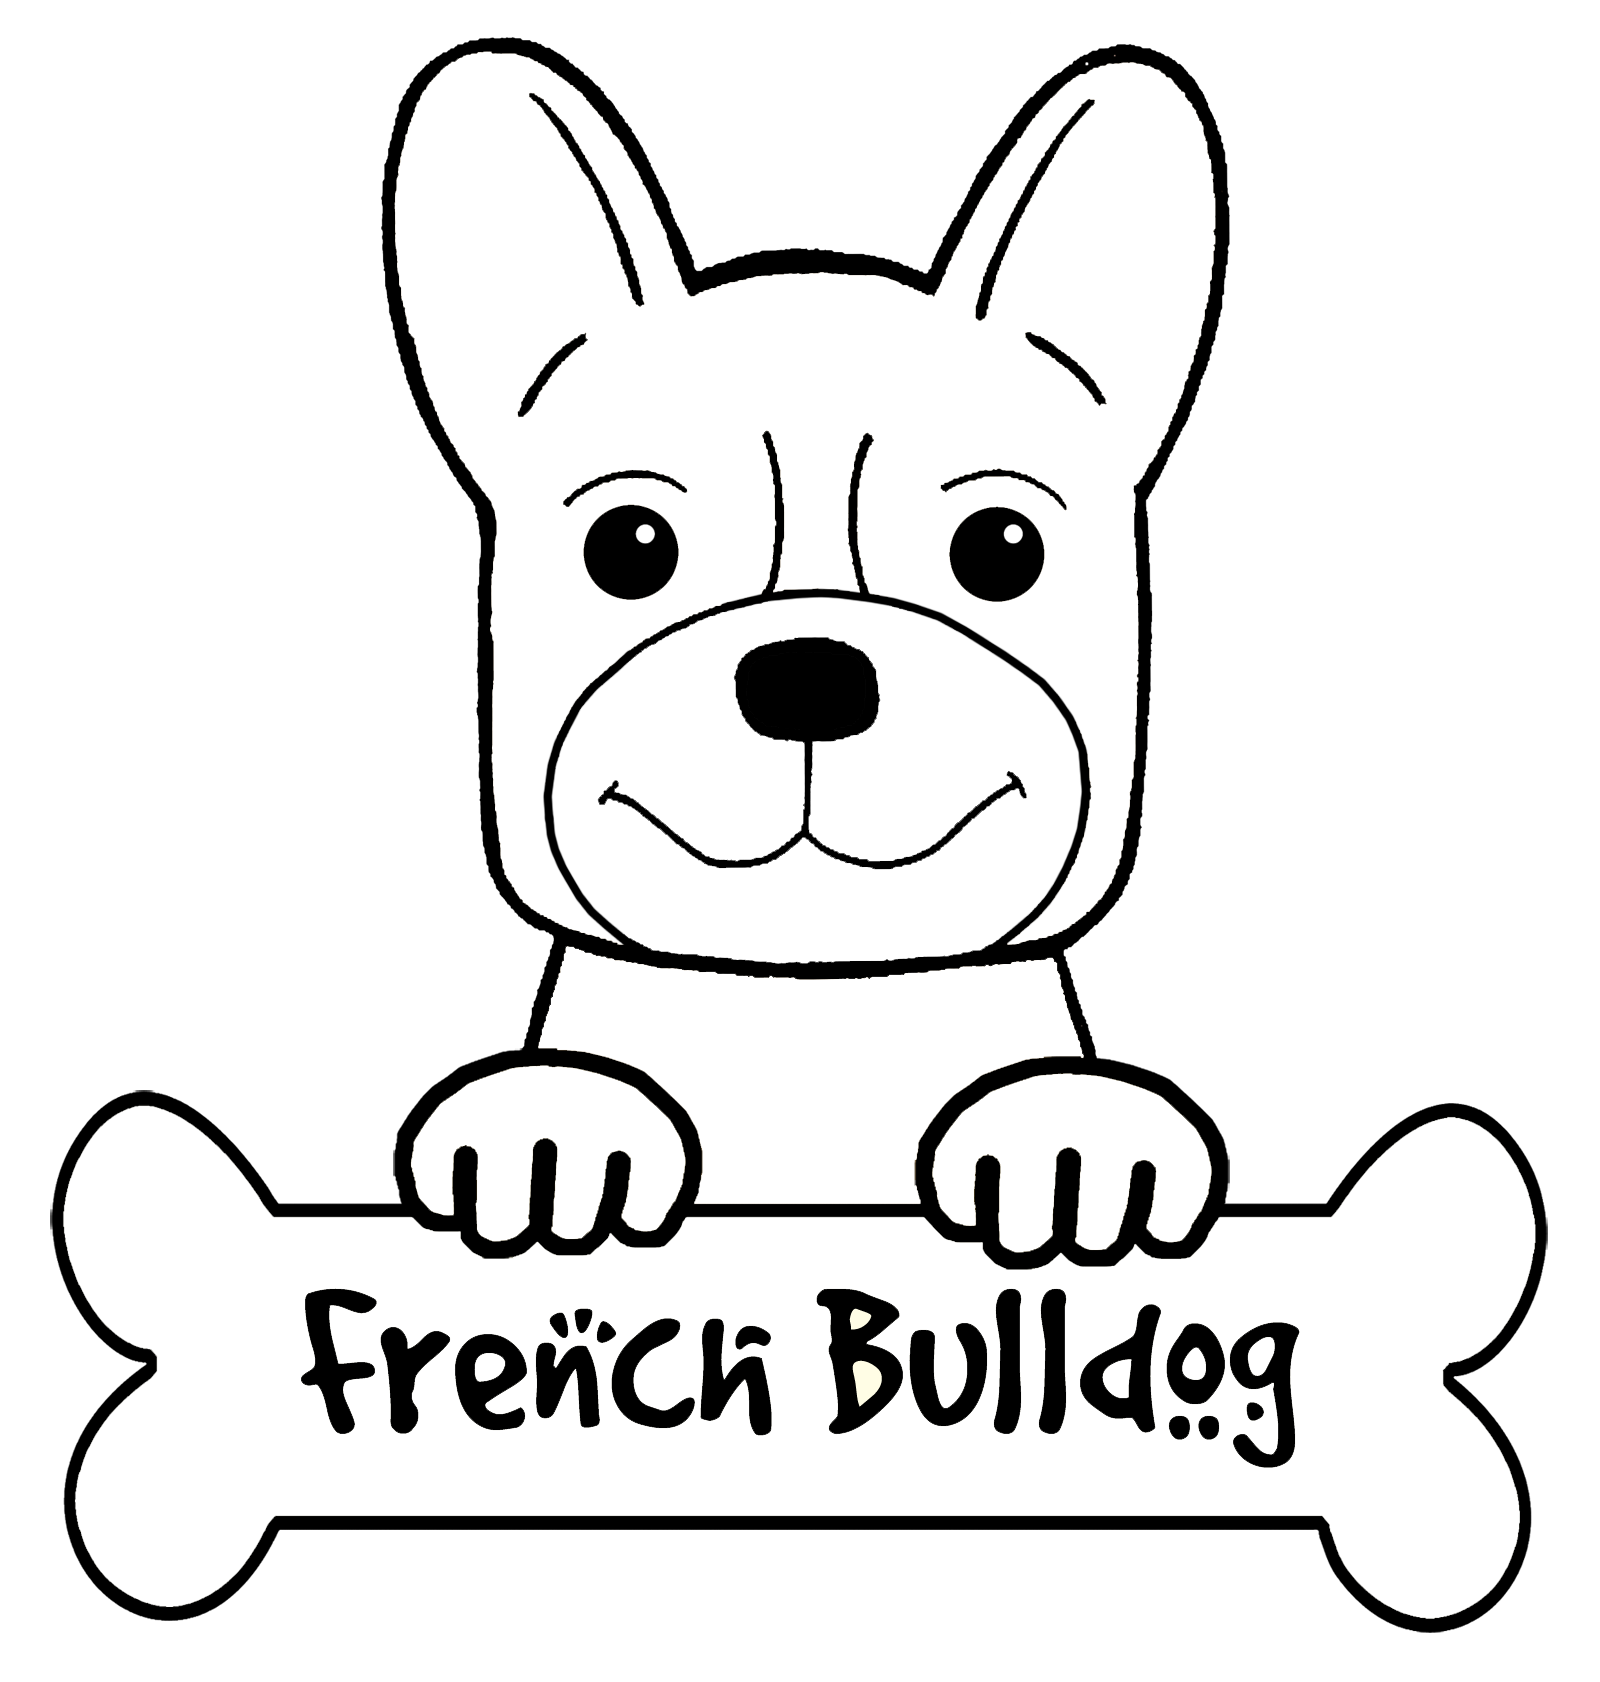 Coloring Pages French Coloring Pages Printable boston terrier coloring pages printable az 13 pics of french bulldog free pages